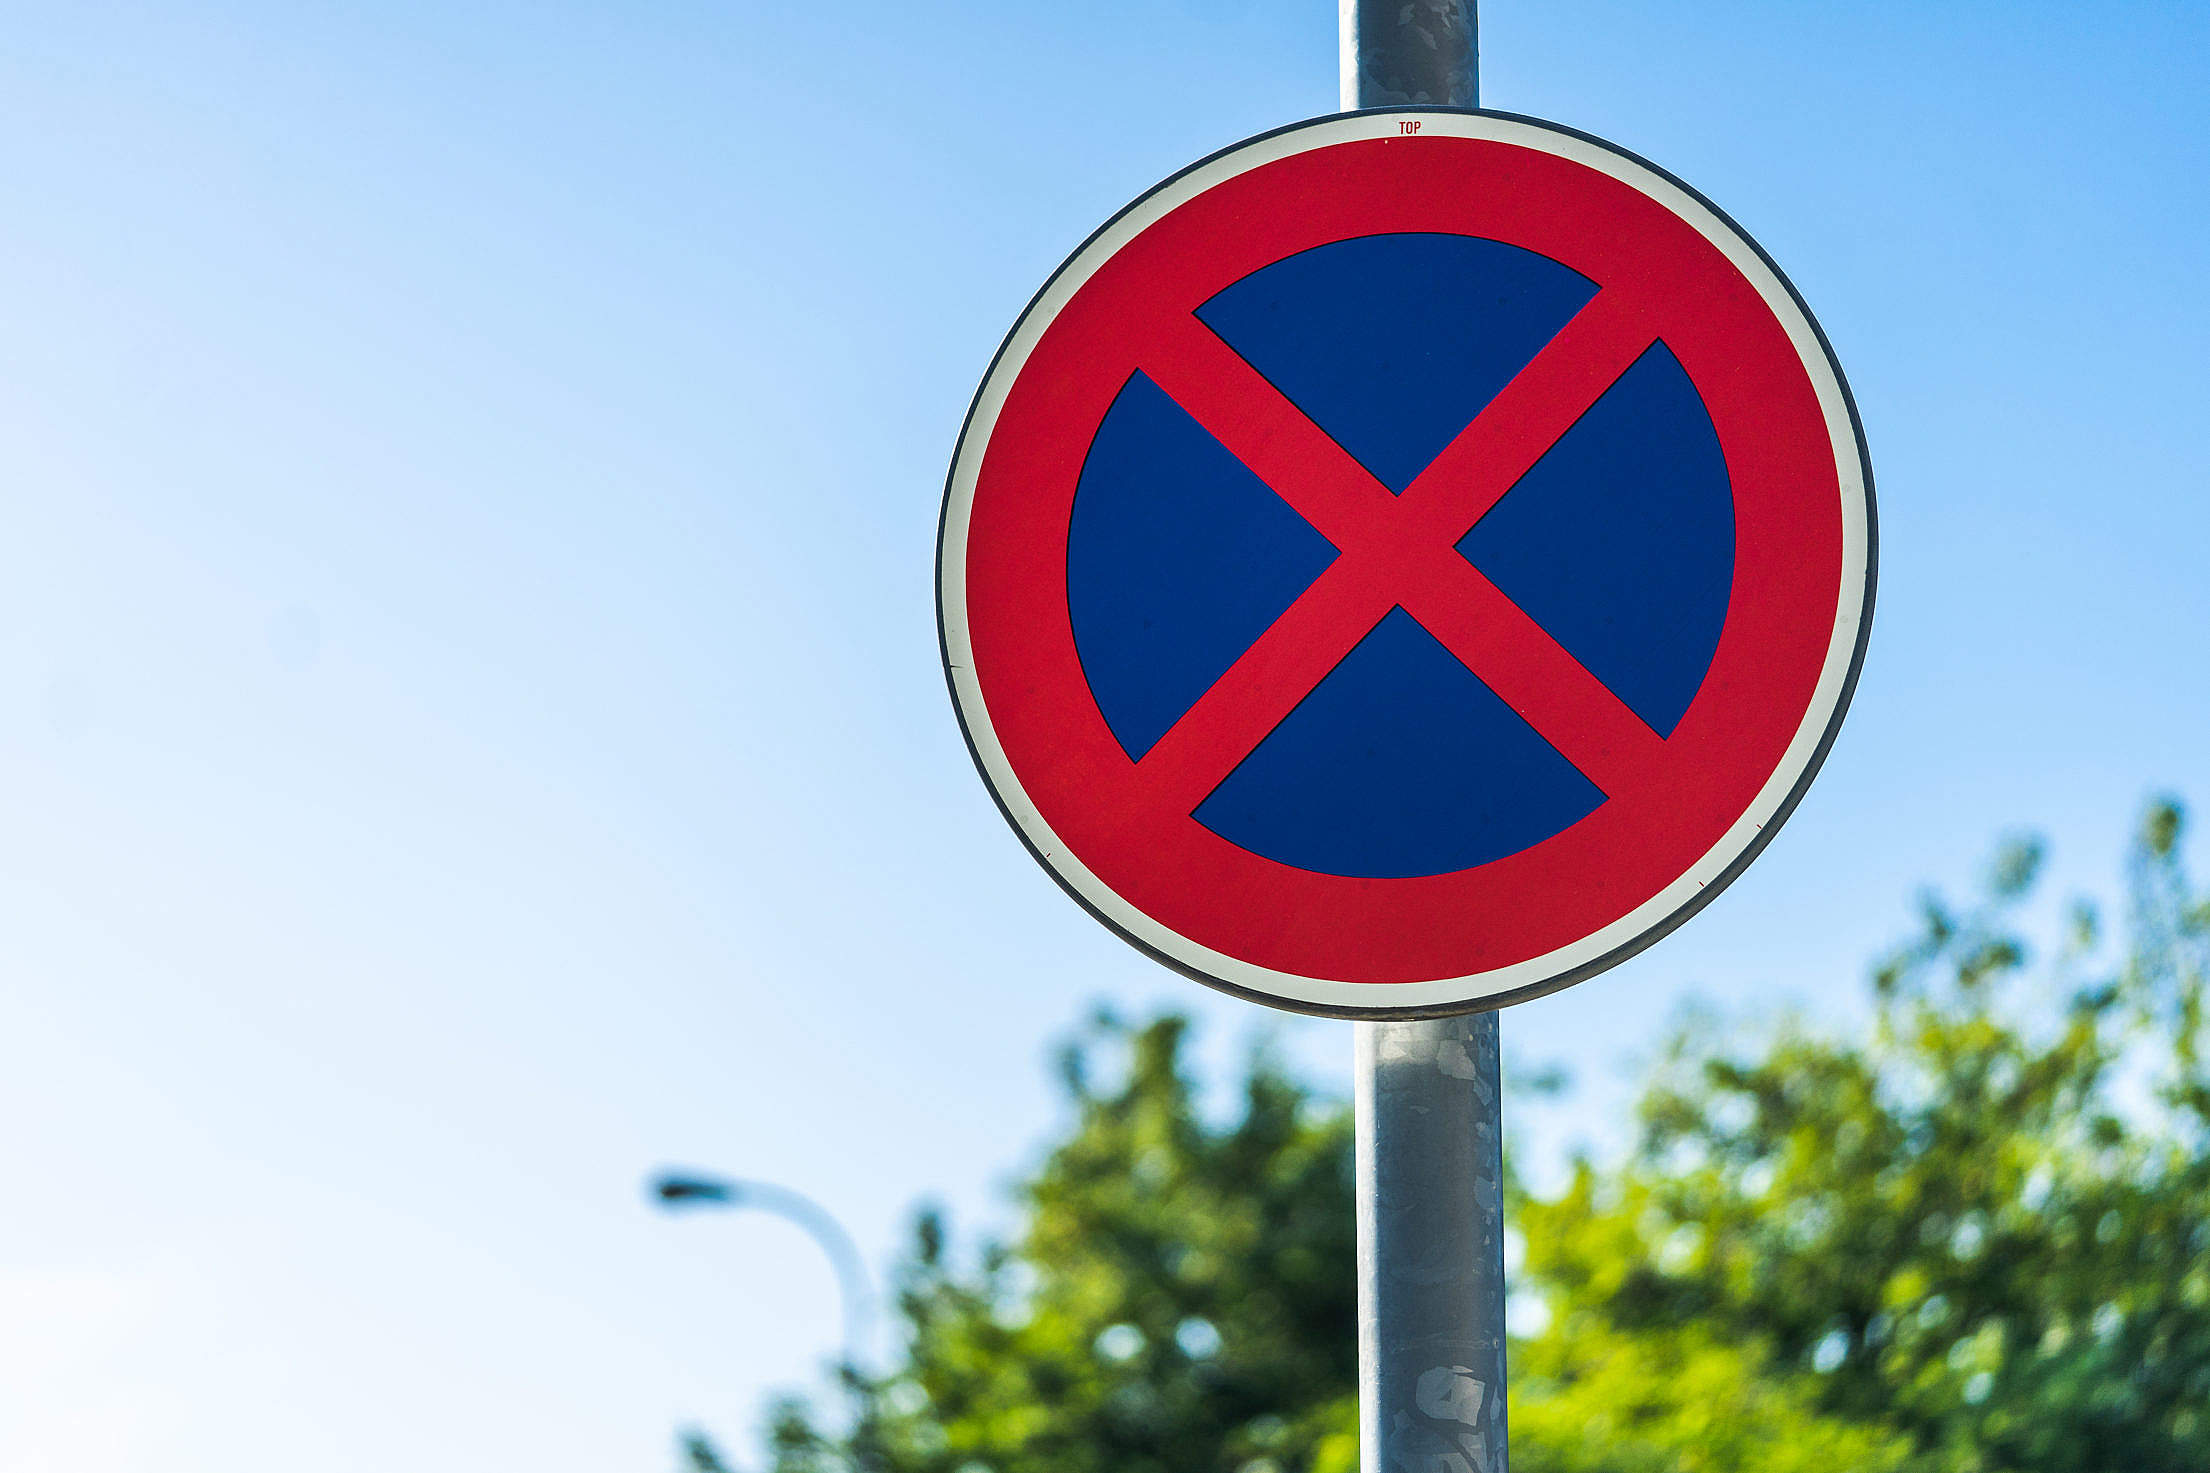 No Parking Traffic Sign Free Stock Photo